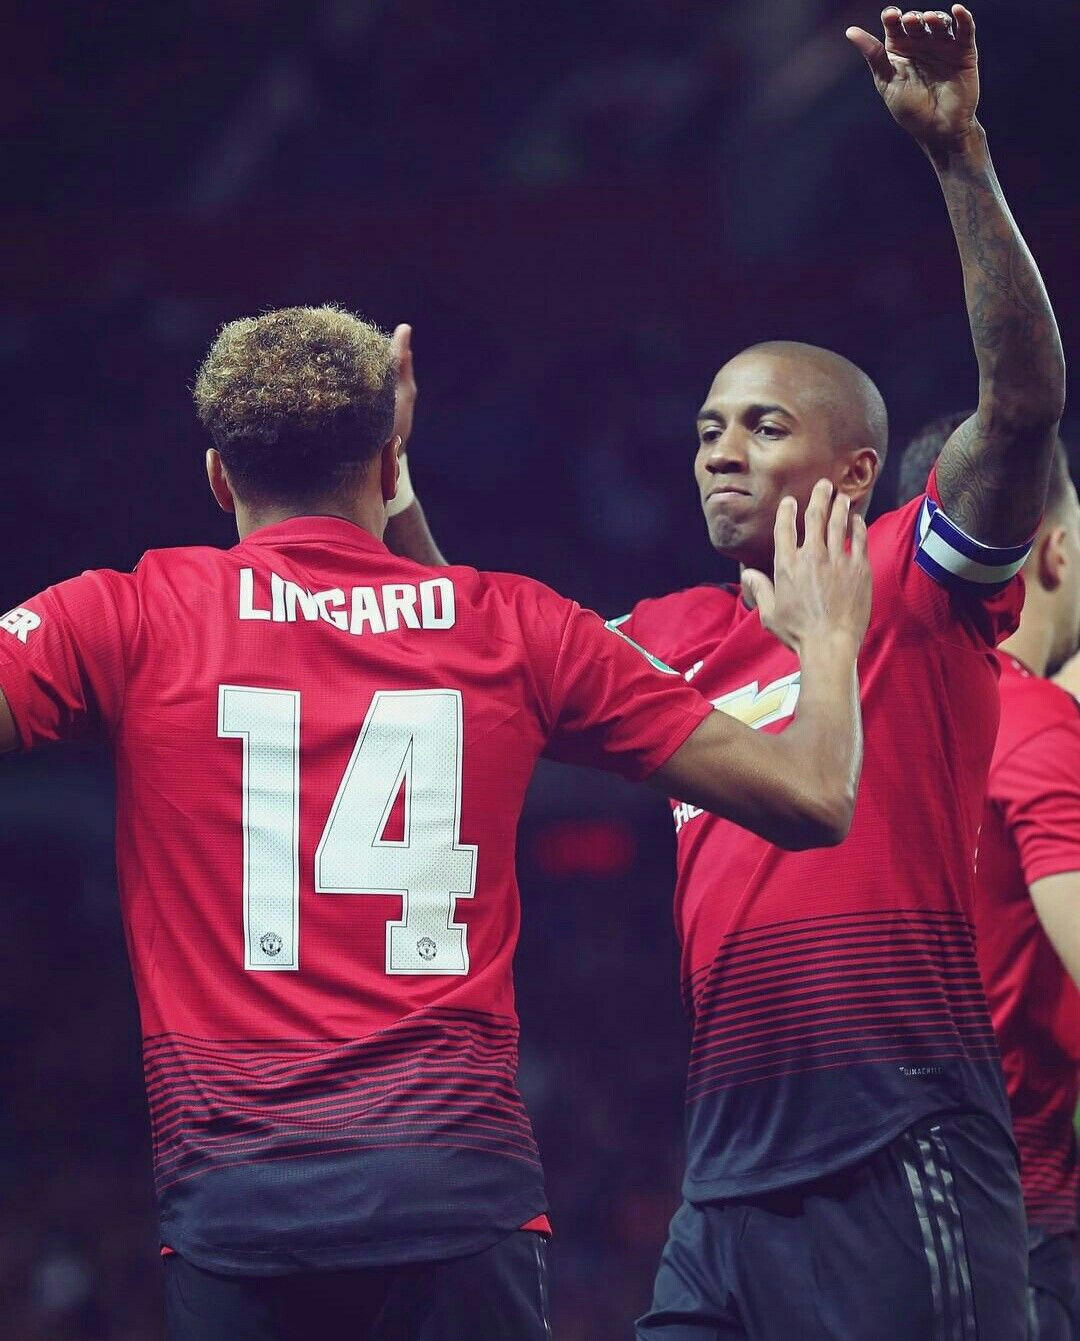 Lingard And Youngy Manchester United Football Manchester United Football Club Manchester United